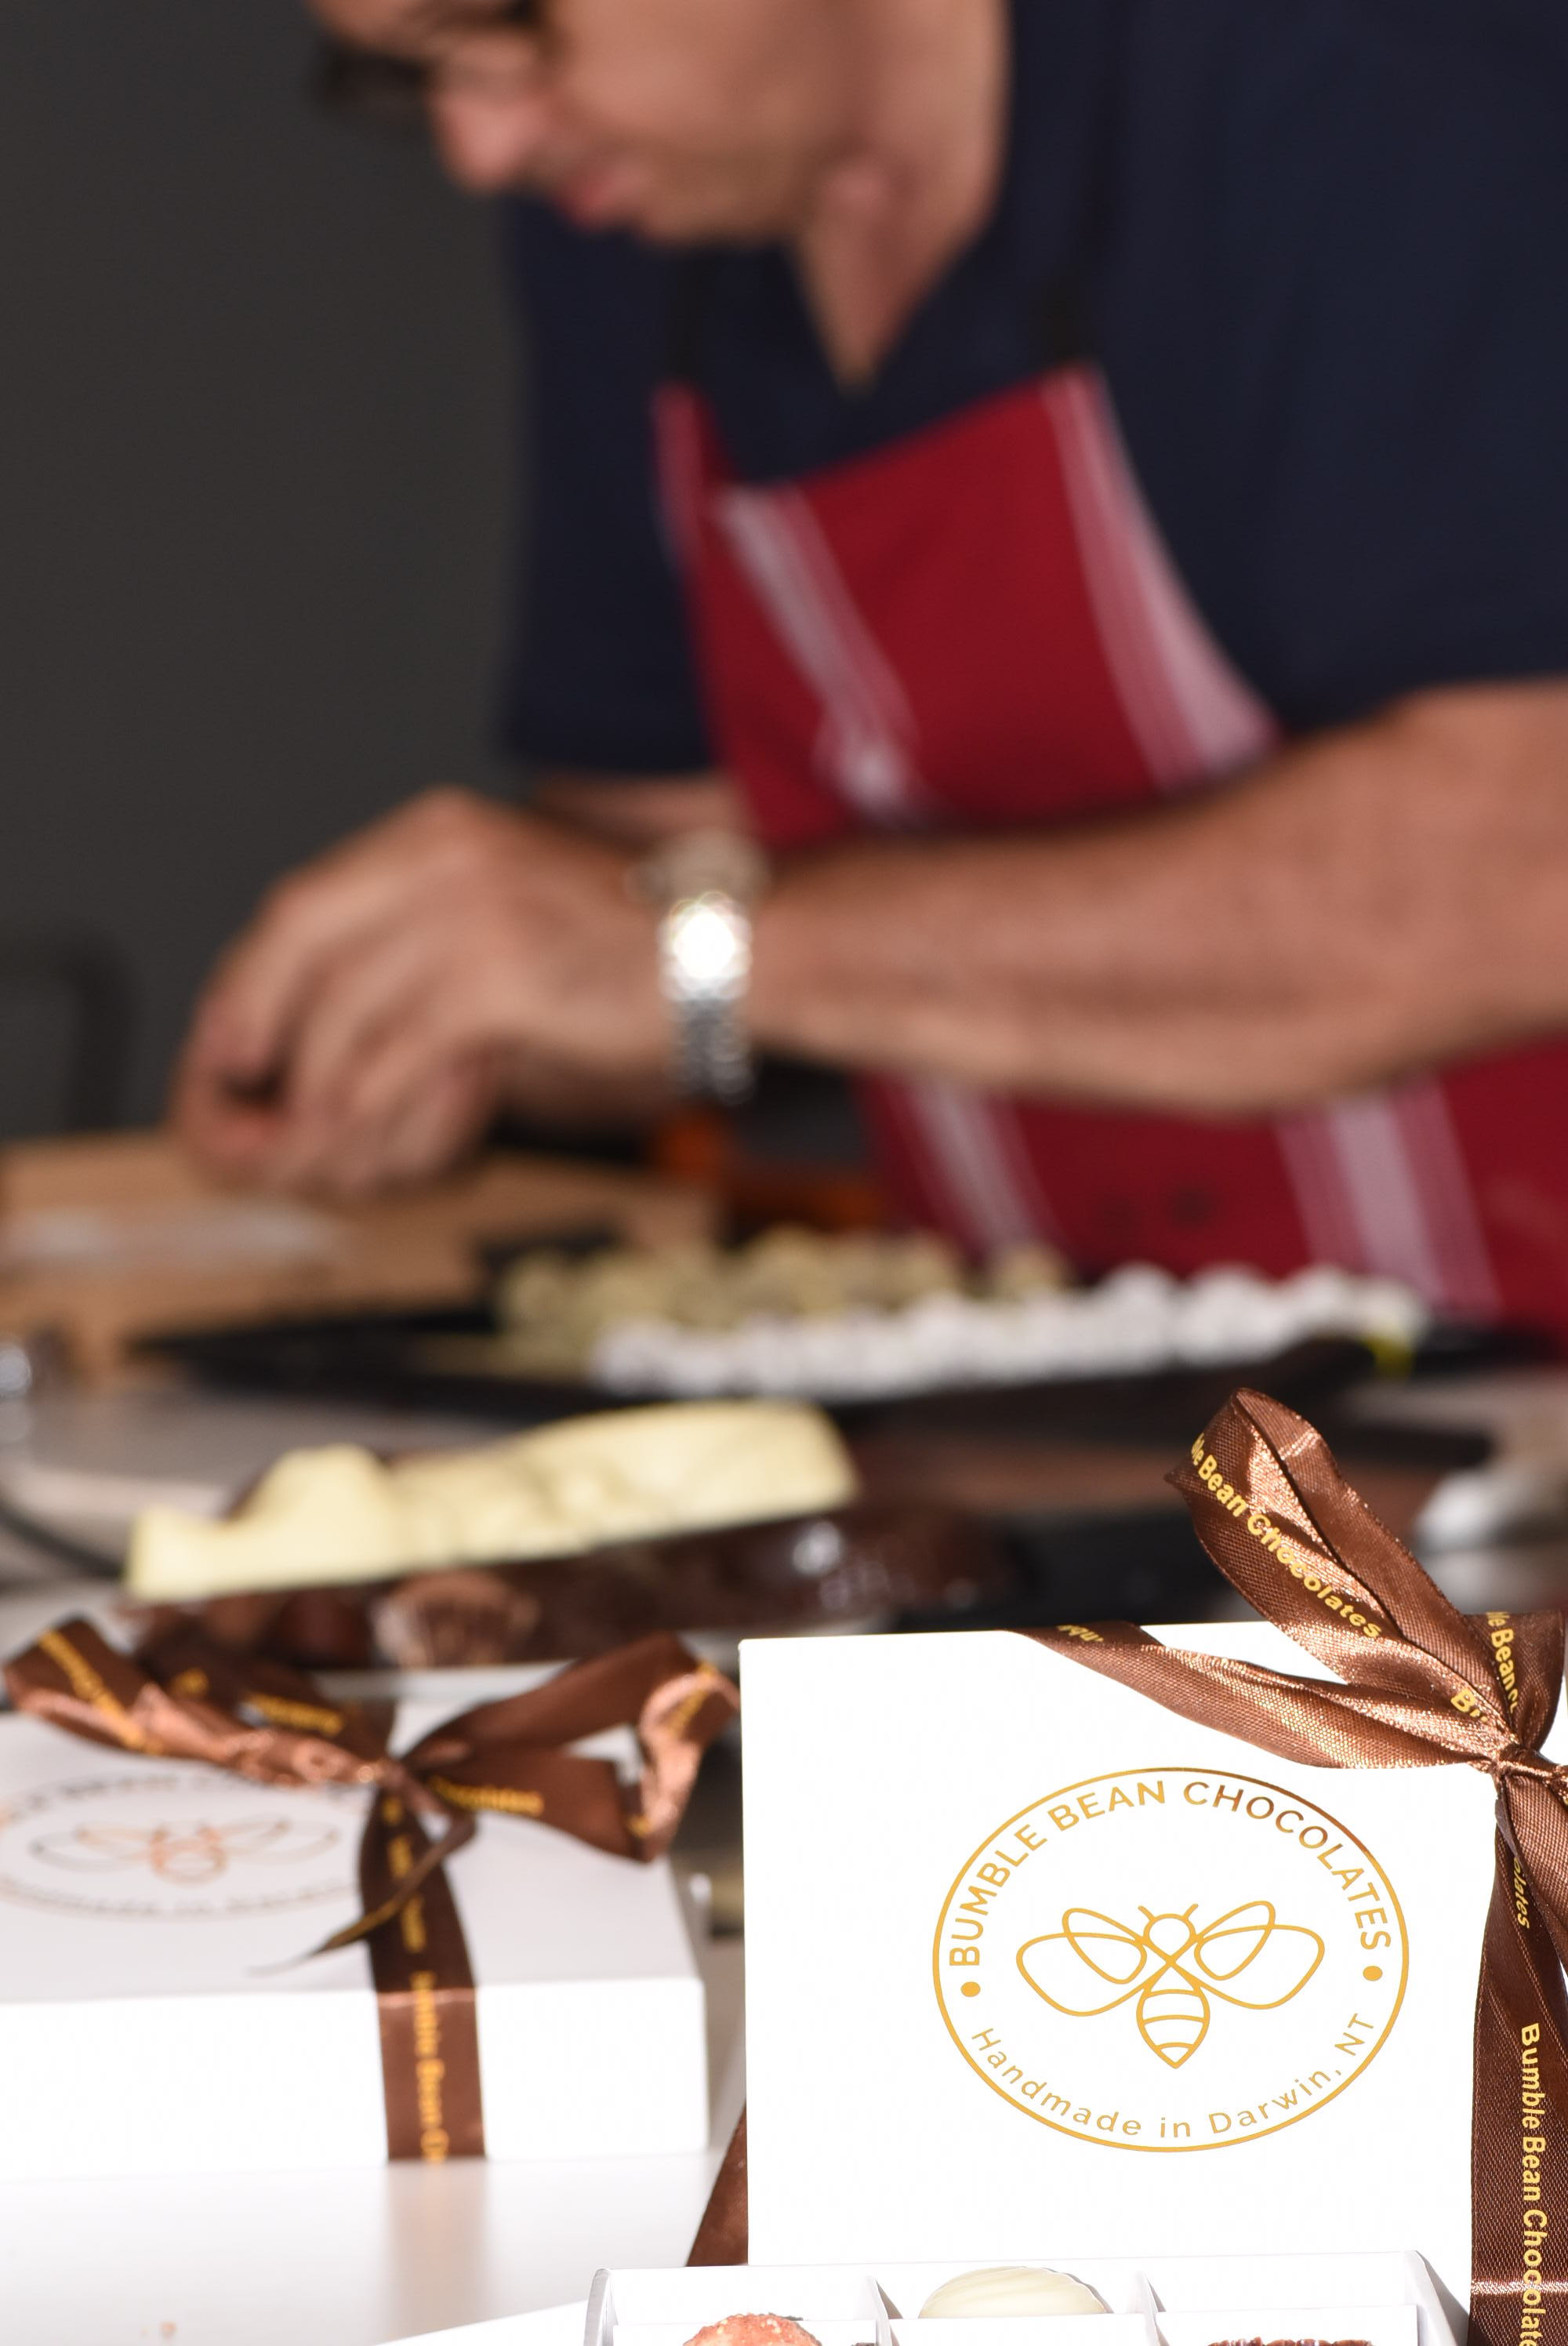 The man behind the chocolate - Head Chocolatier Leo Cleanthous